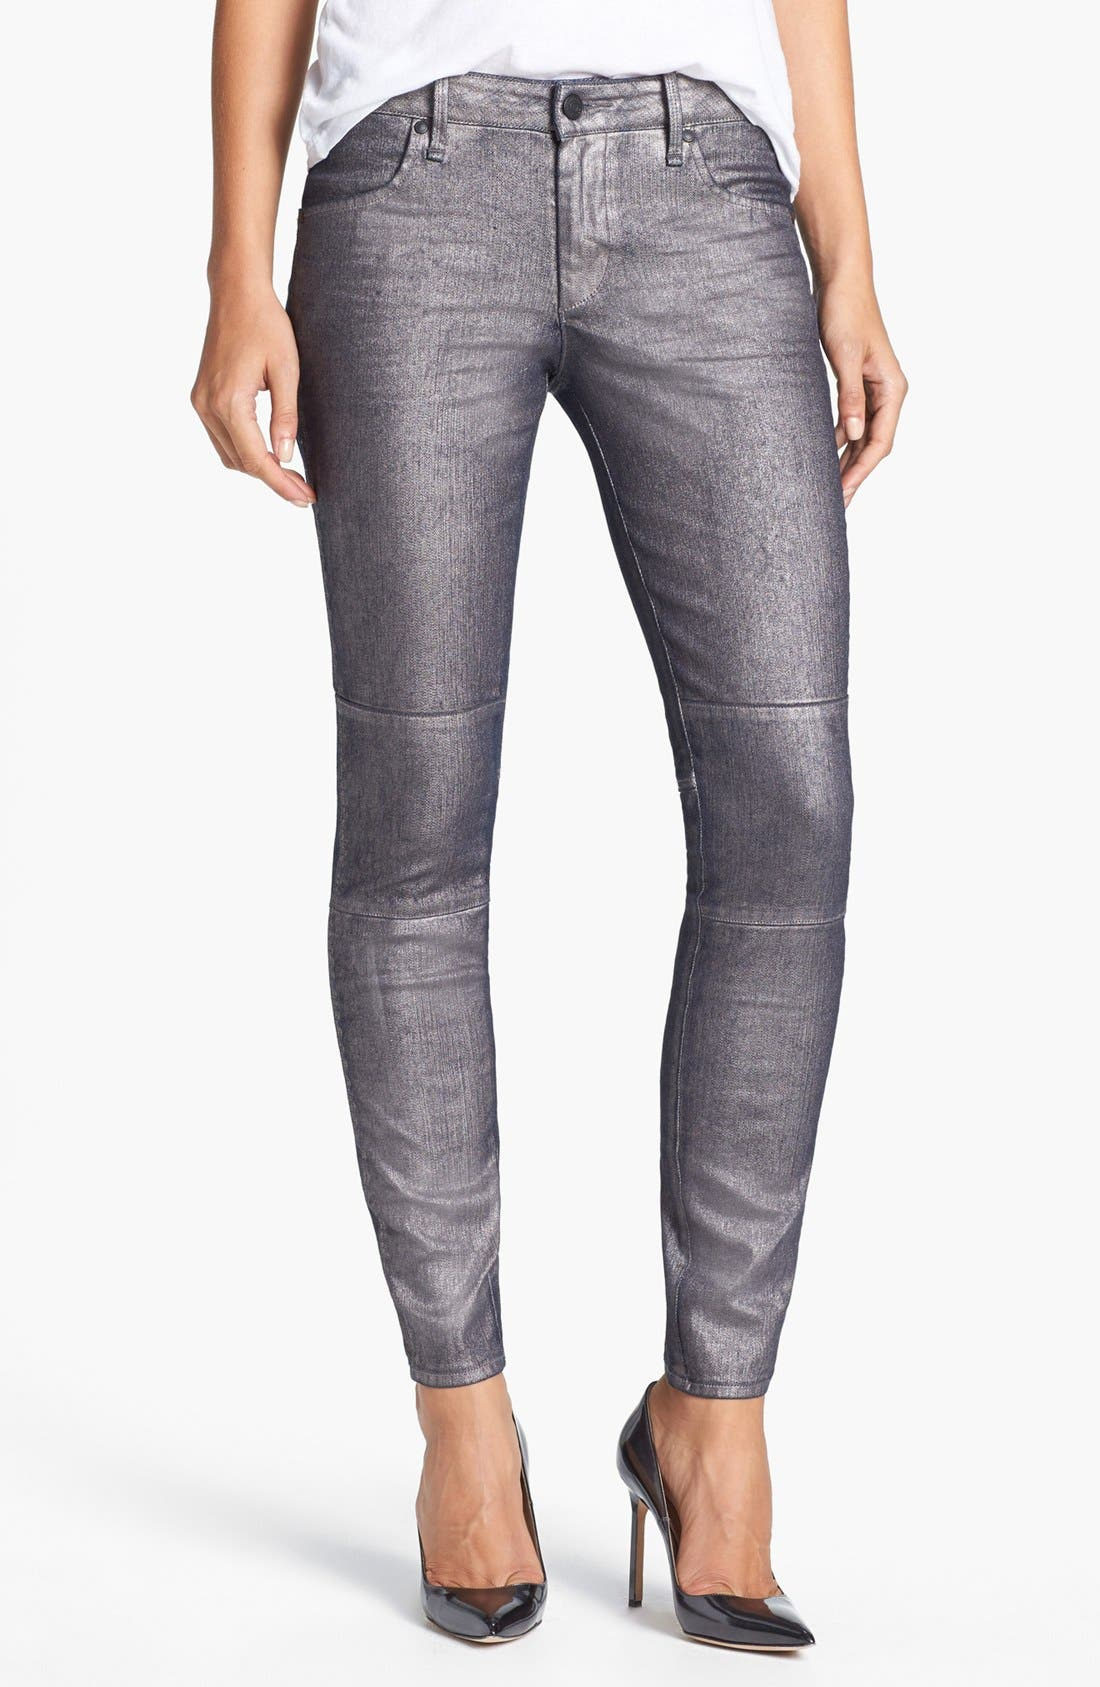 Alternate Image 1 Selected - MARC BY MARC JACOBS Seamed Cigarette Leg Jeans (Gunmetal)